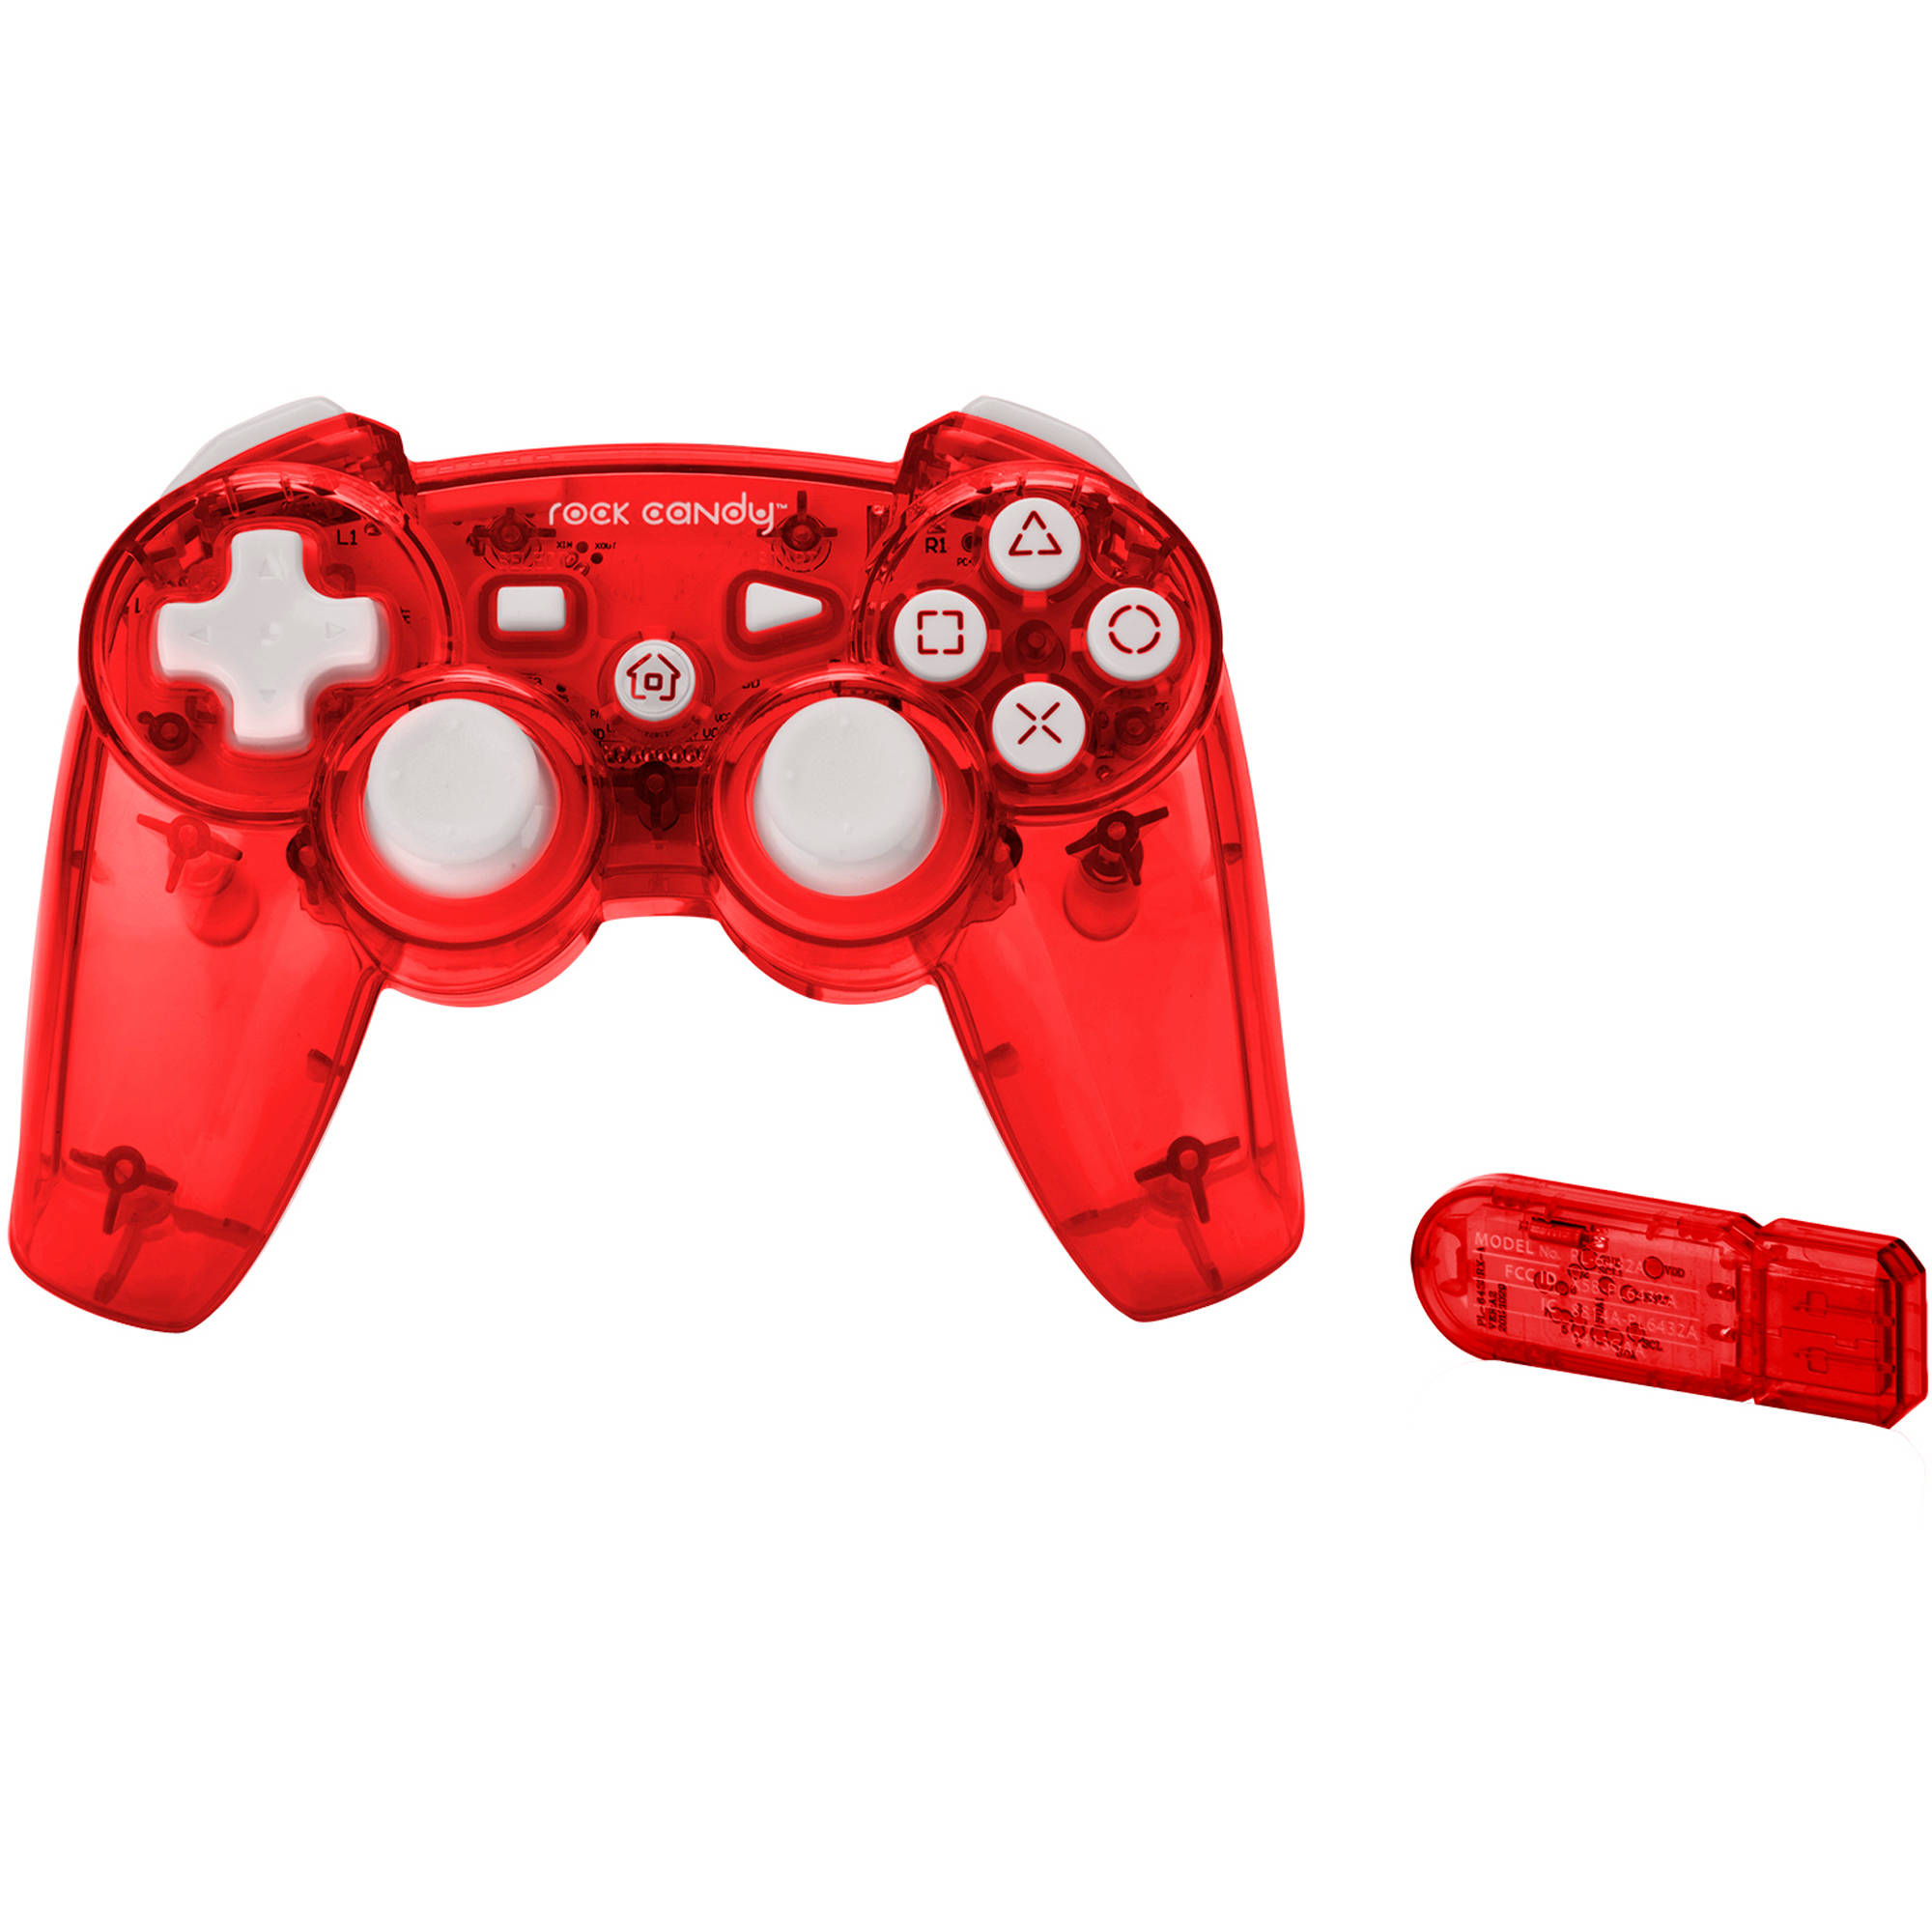 PDP Rock Candy Wireless Controller PS3, Stormin Cherry